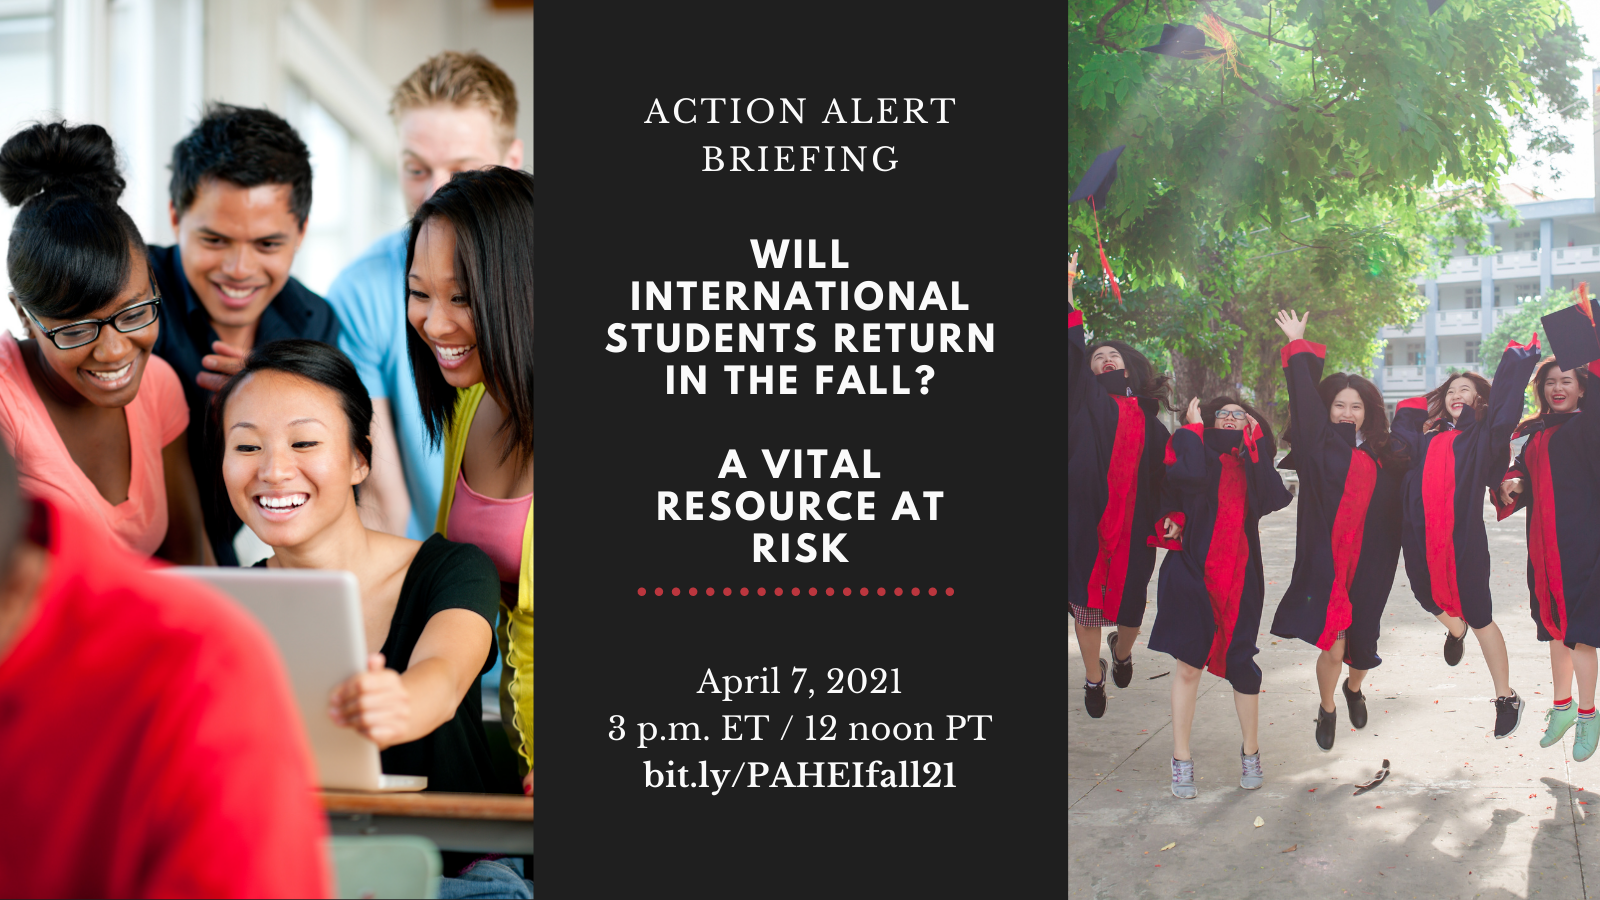 Images of Students. Text on graphic: Will International Students Return in the Fall? A Vital Resource at Risk. April 7, 2021, 3 pm ET